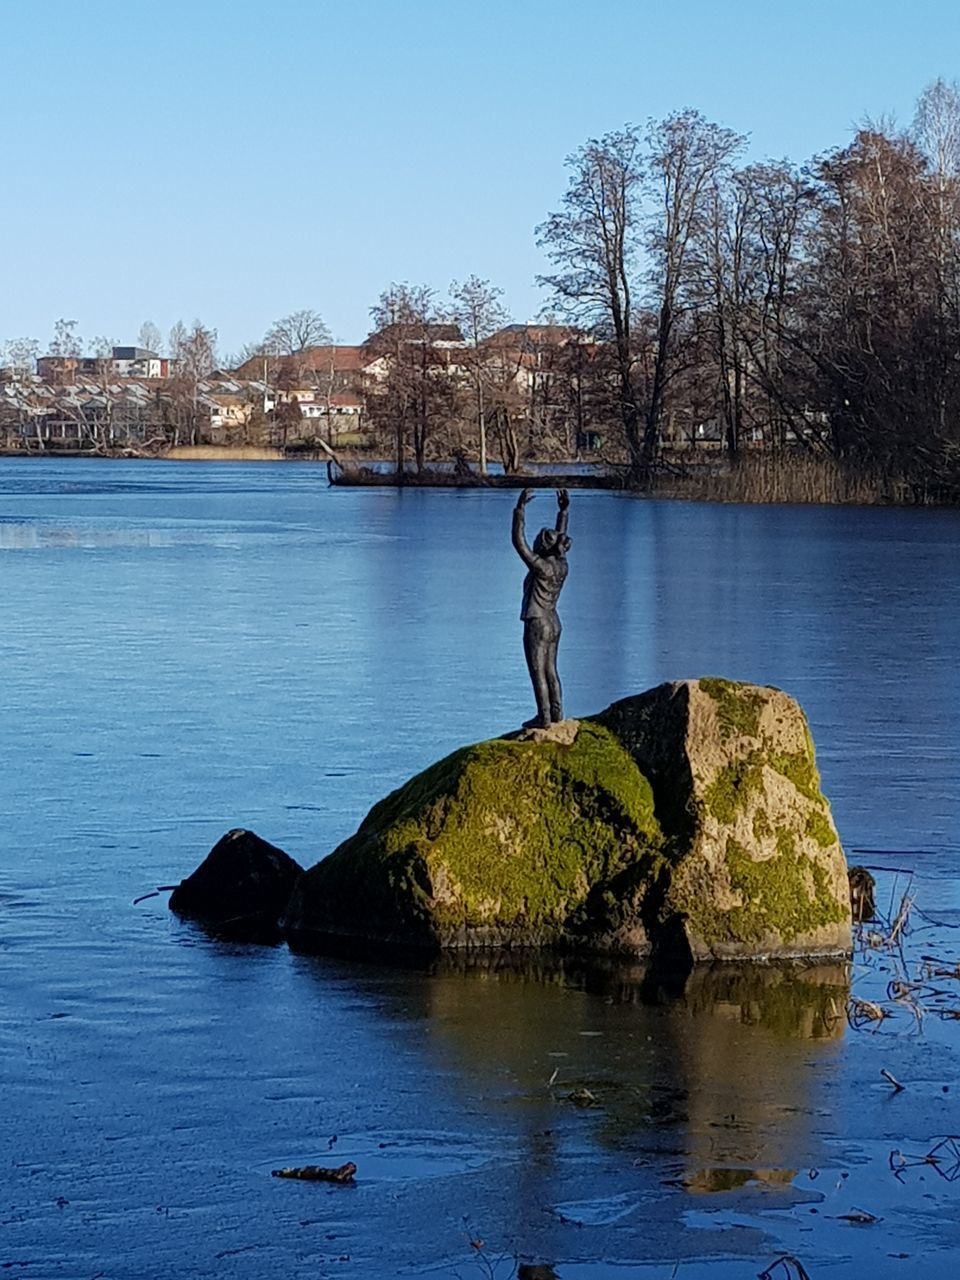 WOMAN STANDING ON ROCK BY LAKE AGAINST SKY